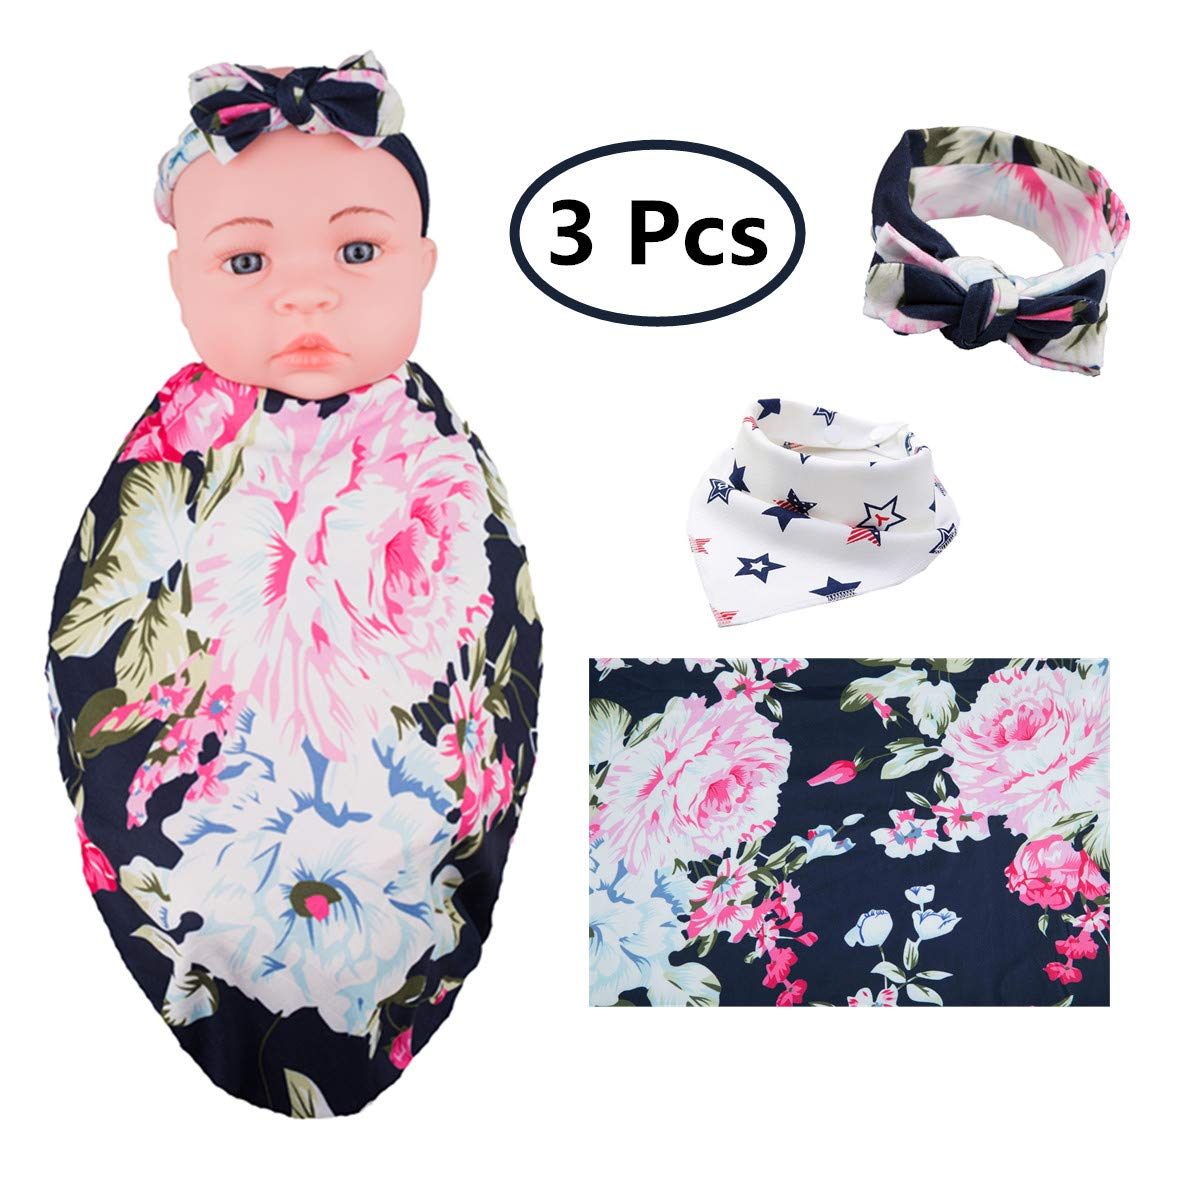 Receiving Blanket Headband Set, Newborn Baby Swaddle with Flower Print and Free Bib(Navy) KINGSOO